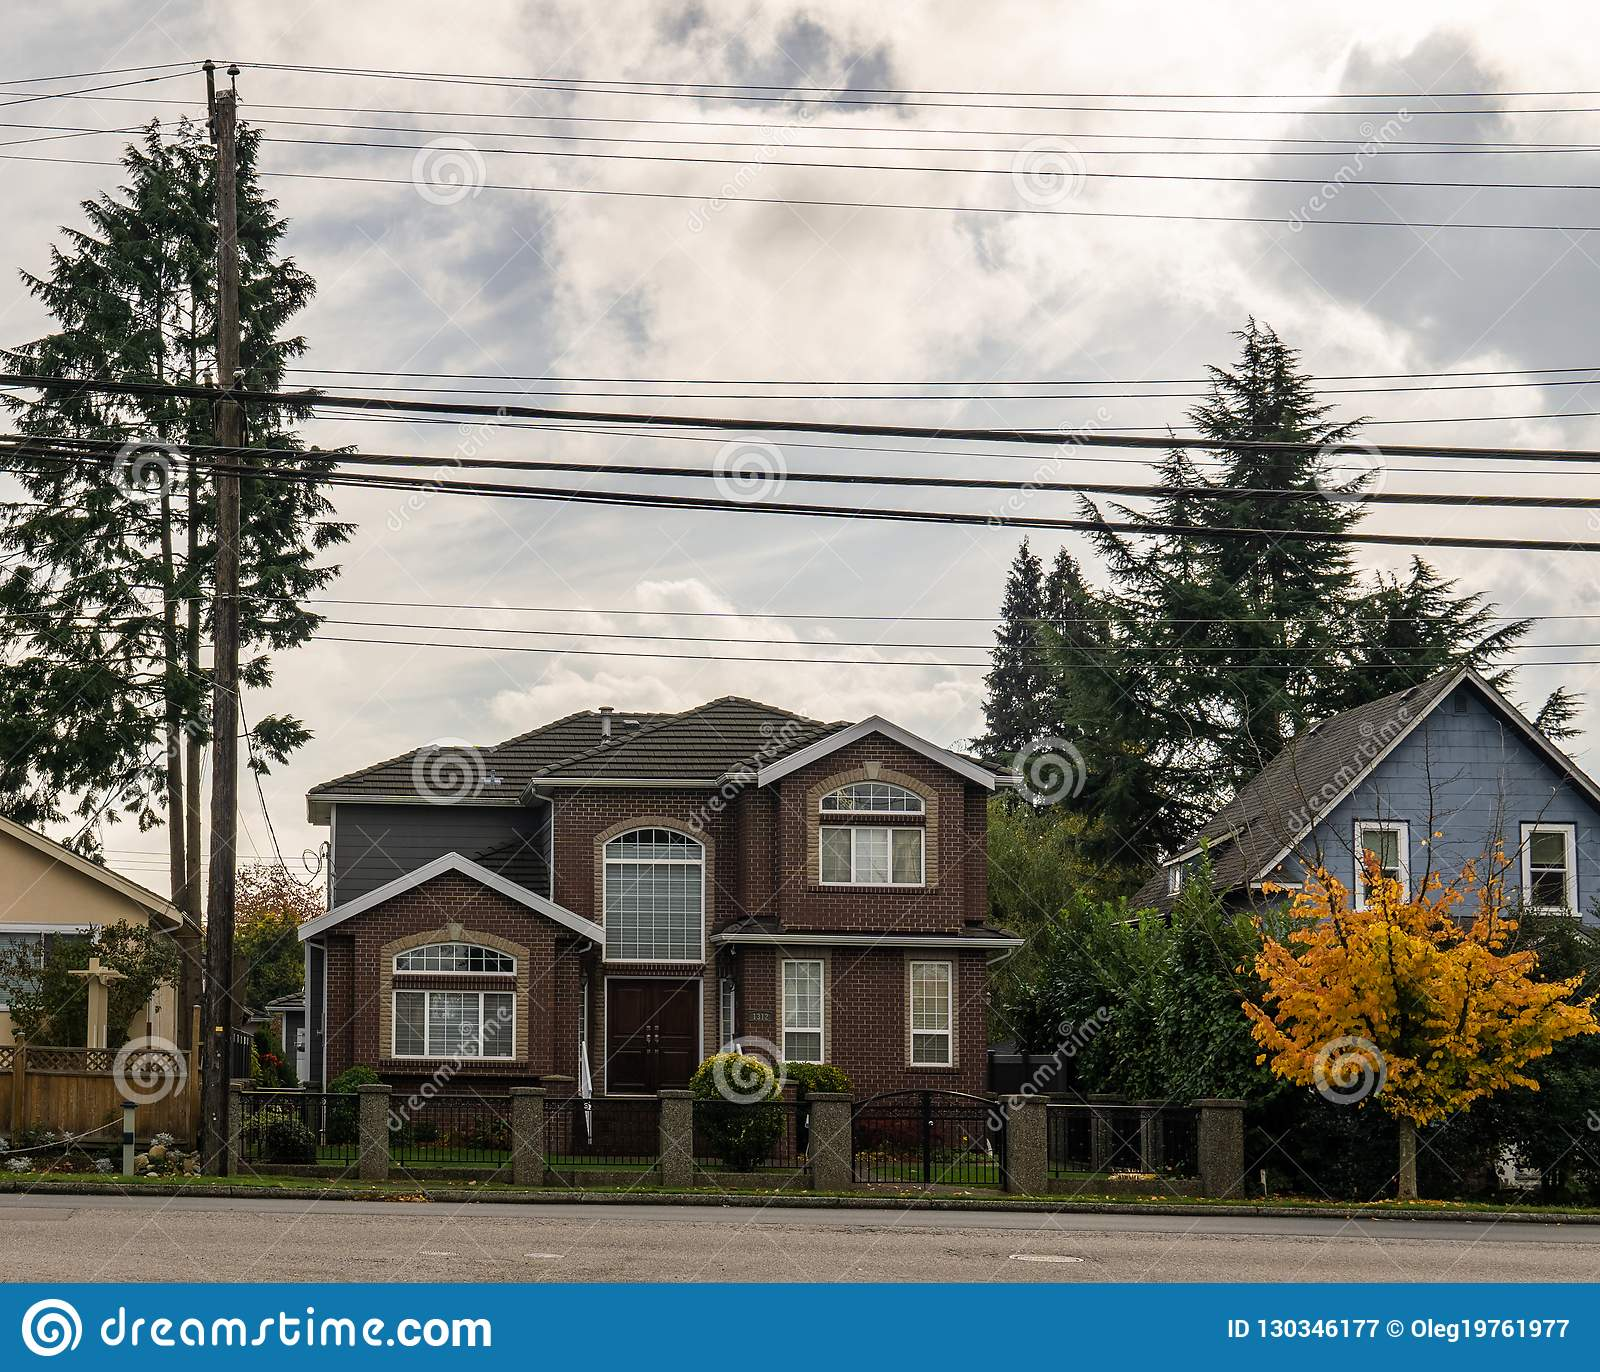 BURNABY, CANADA - October 24, 2018: House in residential area with yellow and red trees in autumn.